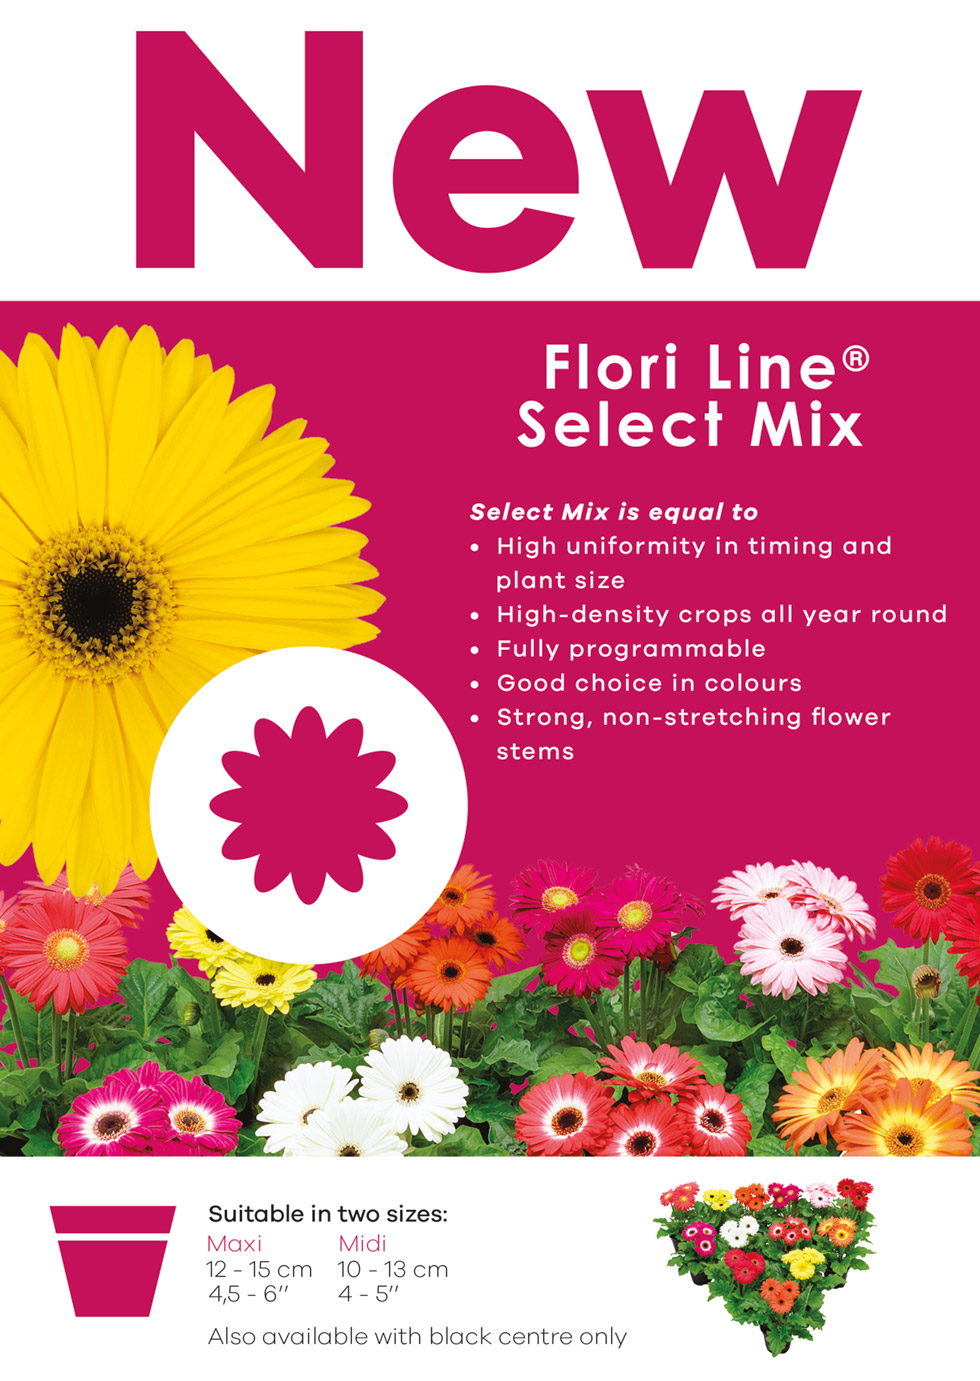 flori-line-select-mix_low-ress-1-cover